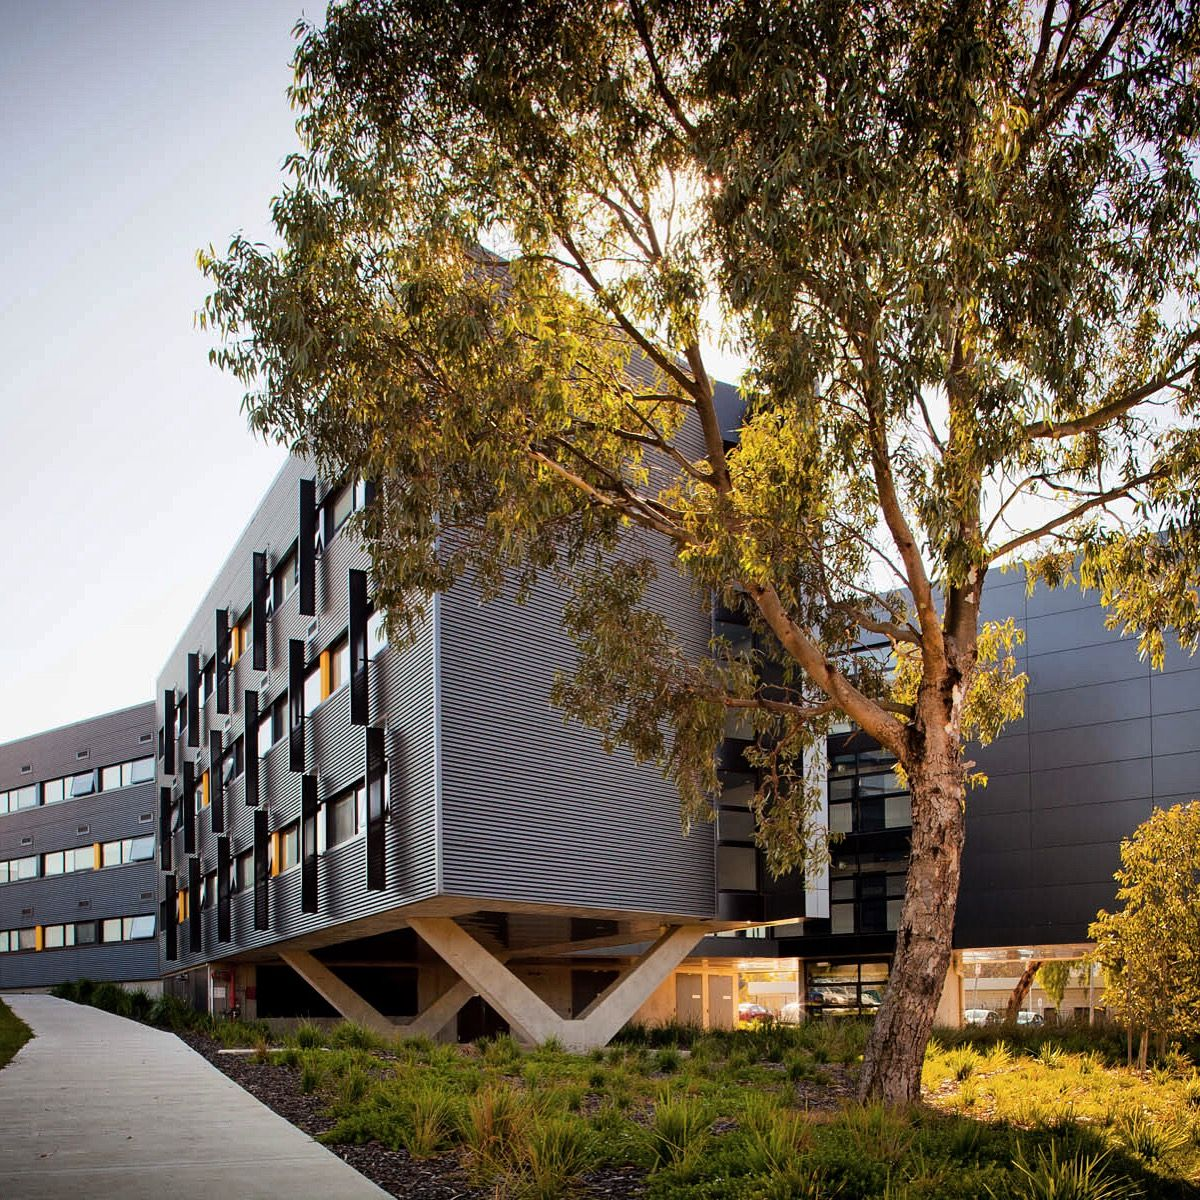 Deakin University Student Residences - Waurn Ponds Campus in Geelong on college application draft, college application template, college application checklist, college application examples, college common application print, college application cv, college graduation rates us chart, college application app, college financial aid, college application service, college application presentation, college application for harvard university, college application process, college application application, college application organization, college resume, college application letter, college application pdf, college application print out, college application report,